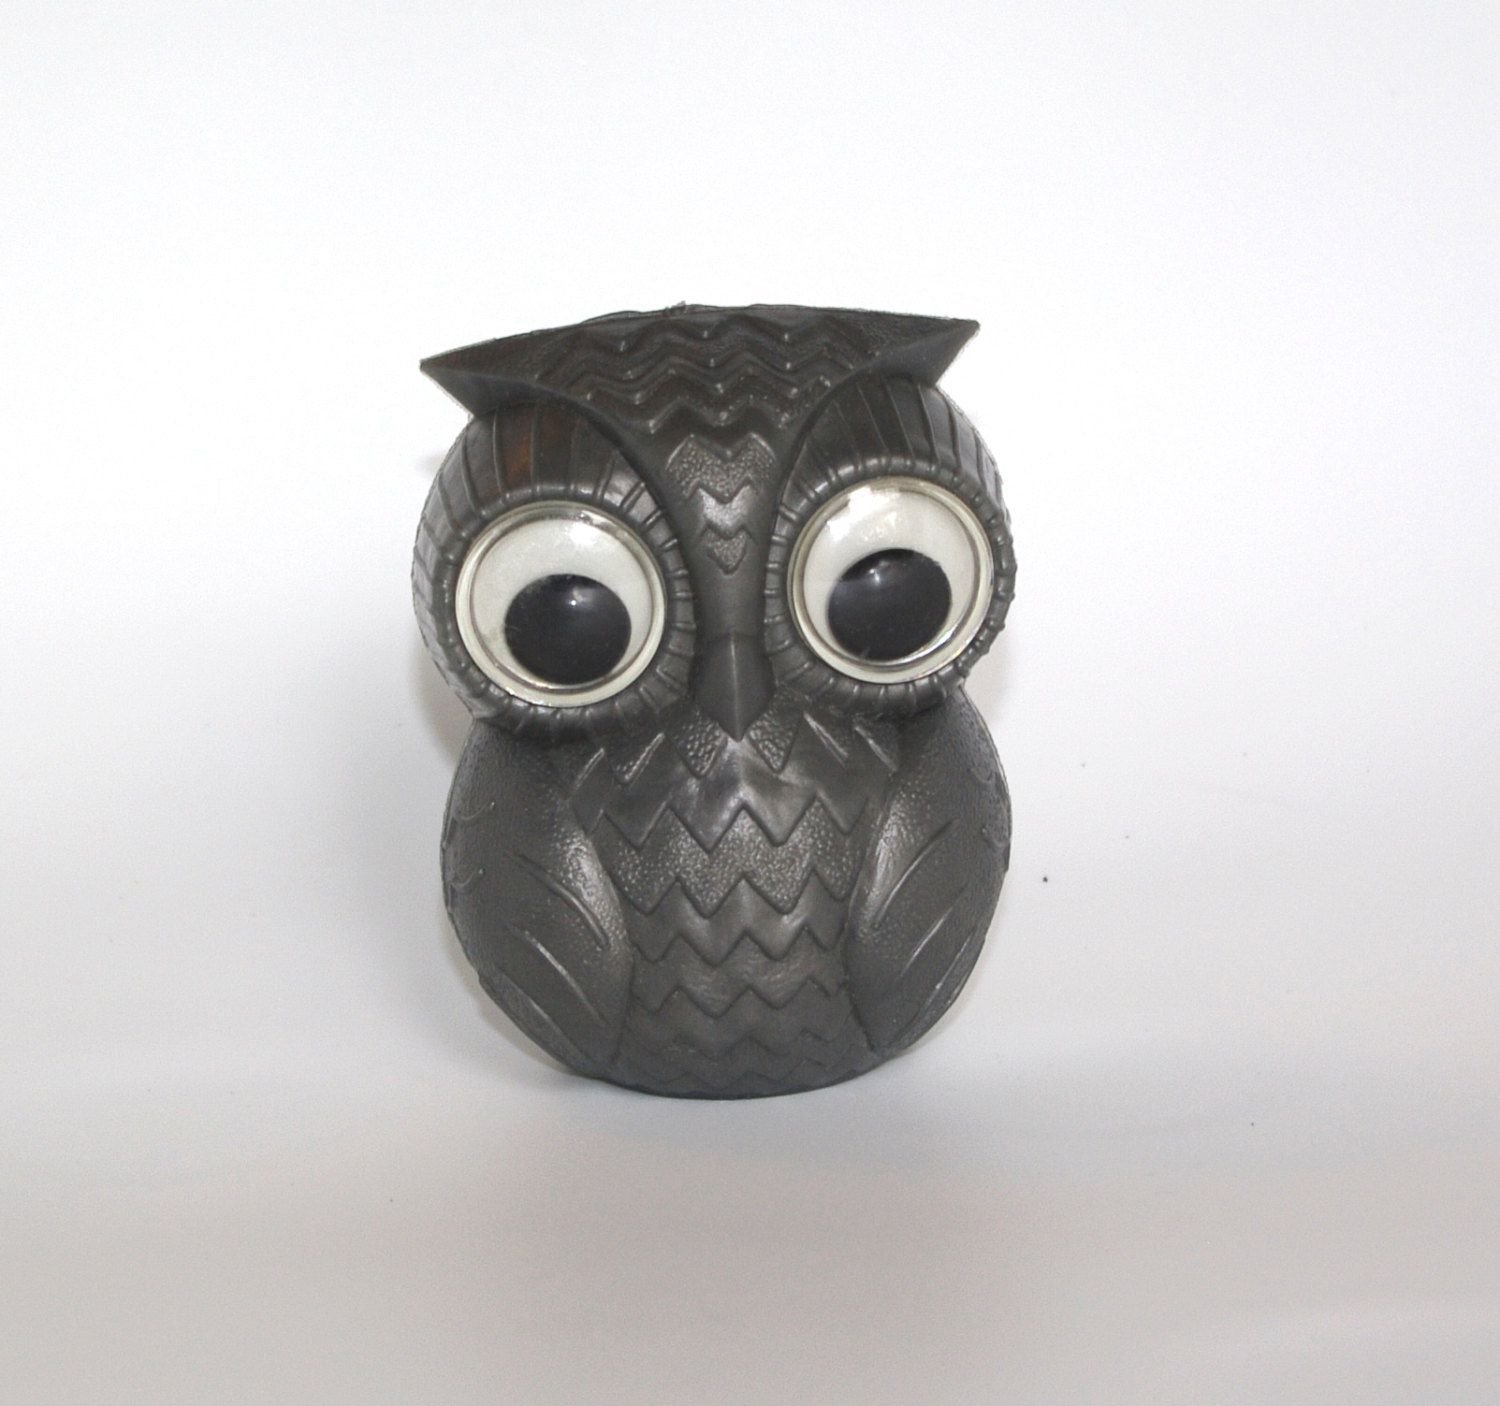 Cute toys images  Cute Soviet Grey Owl Toy  Collectible Plastic Gray owl Bath Toy